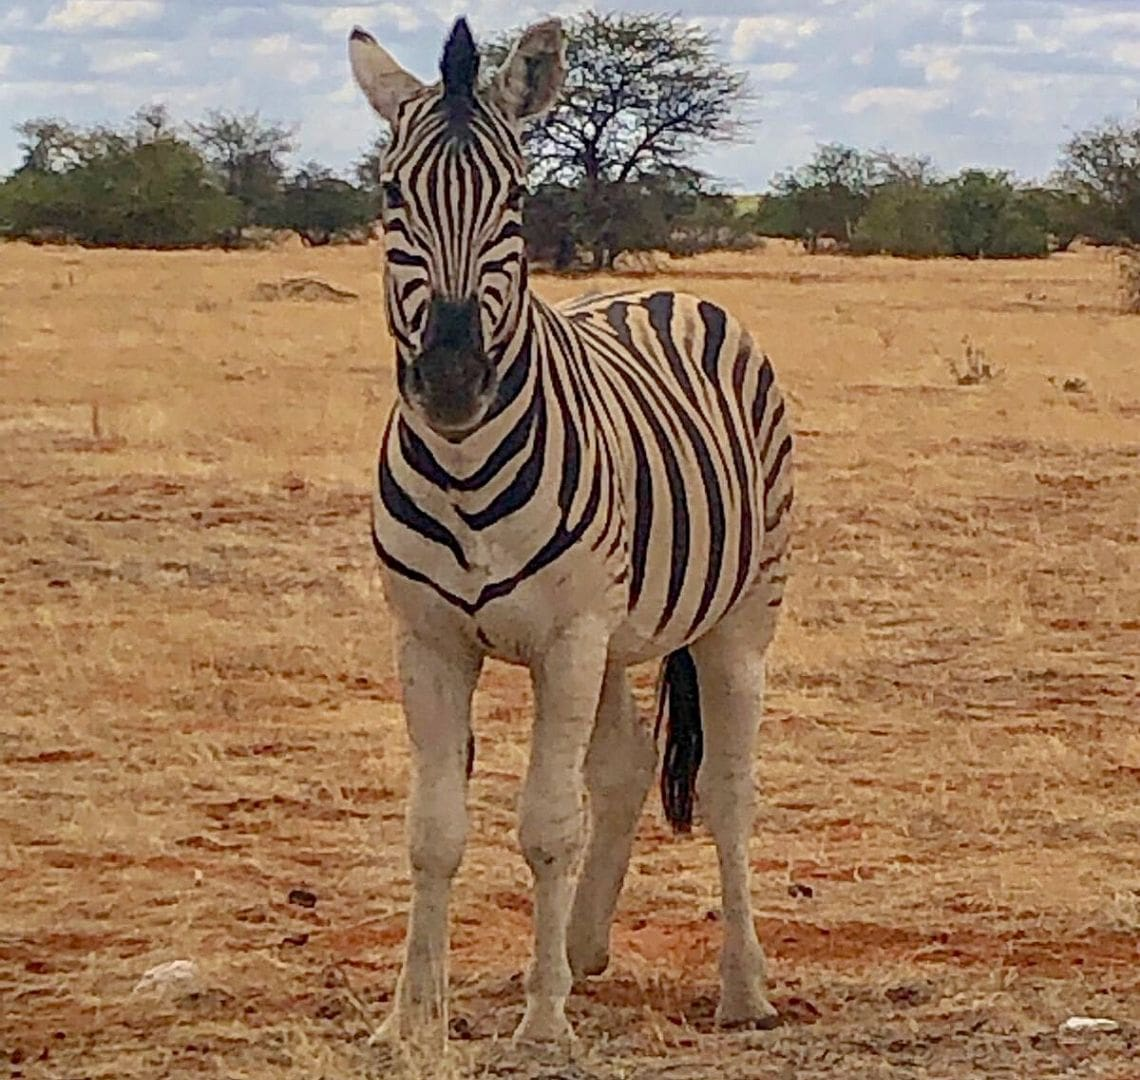 2 Week Namibia Itinerary - a zebra takes up most of this photo. It is stood on red sand covered in dry, yellow grass. In the background there are some small green trees and shrubs. The zebra is looking directly at the camera.